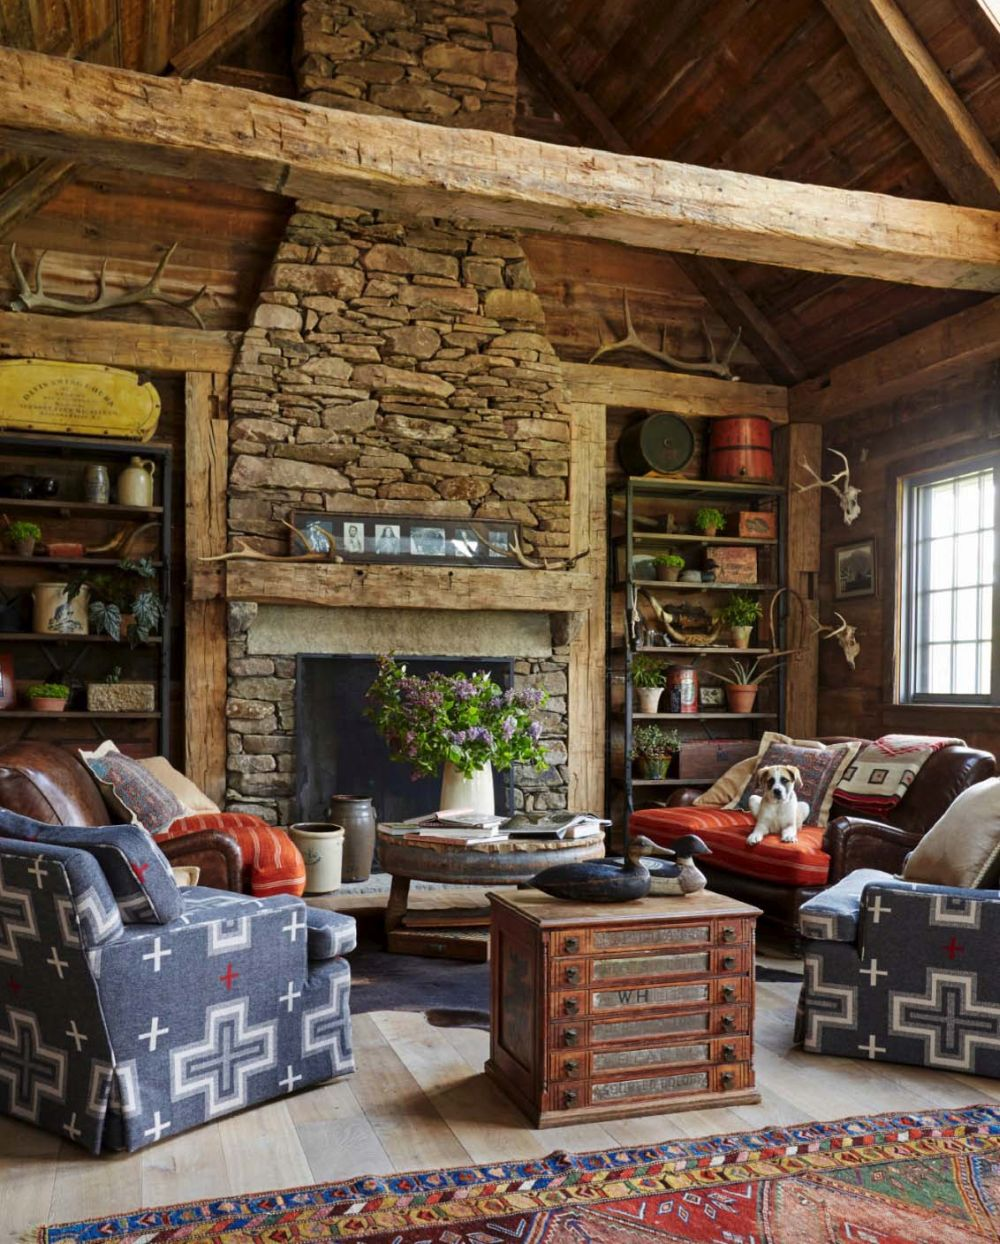 The living room features a cozy seating area arranged in front of a large stone-clad fireplace